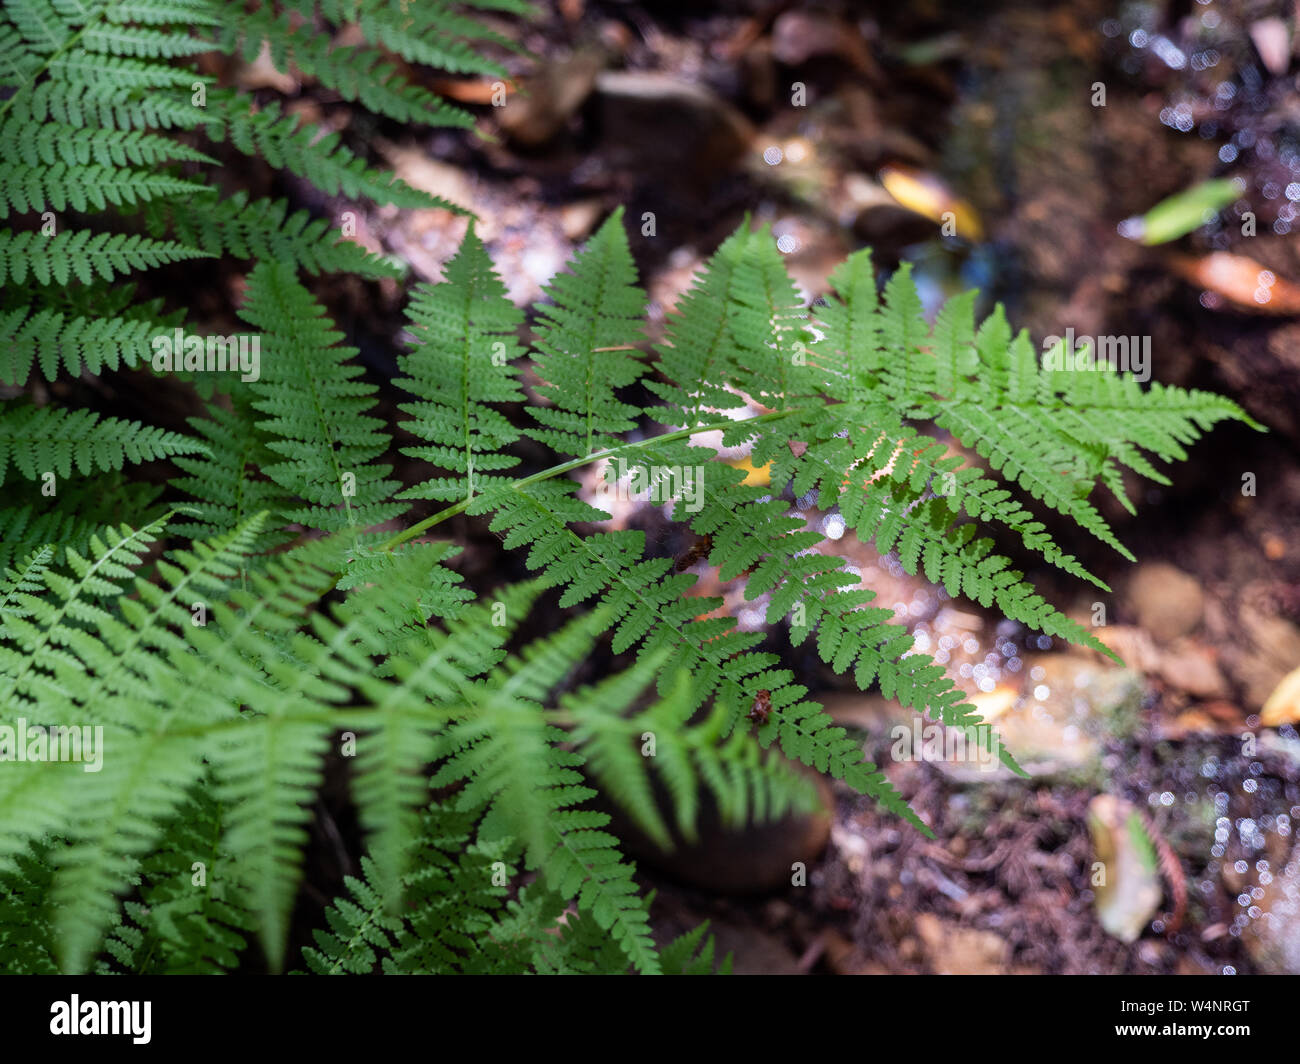 Green ferns in sunlight growing next to stream Stock Photo